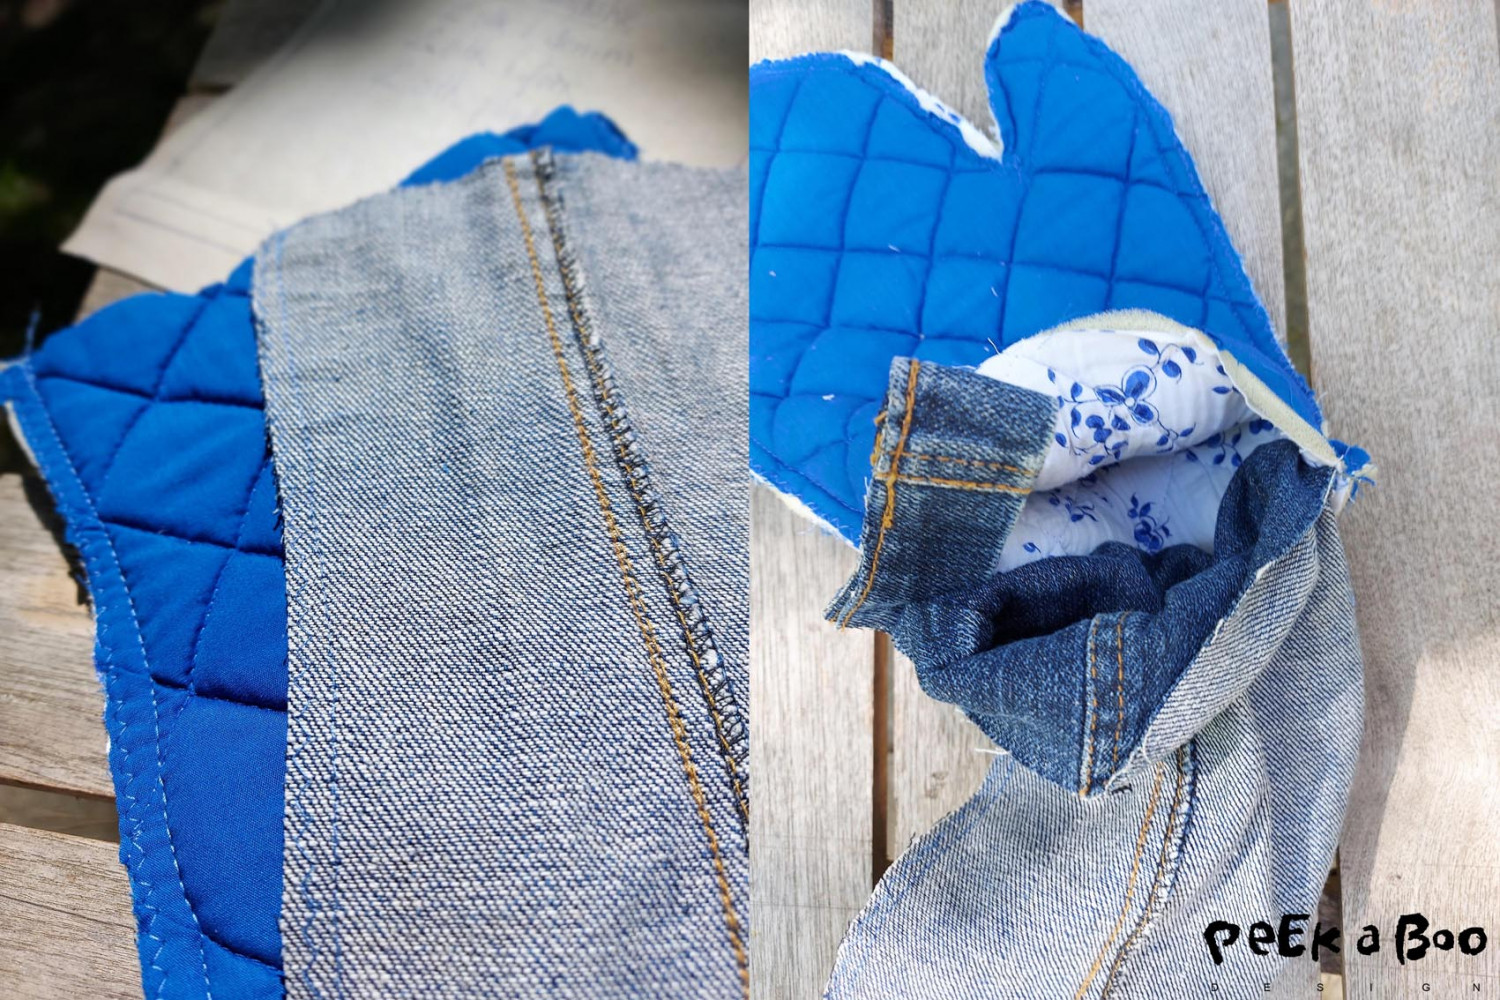 Zig-zag round the edges and cut a strap from the bottomedges of the jeans.